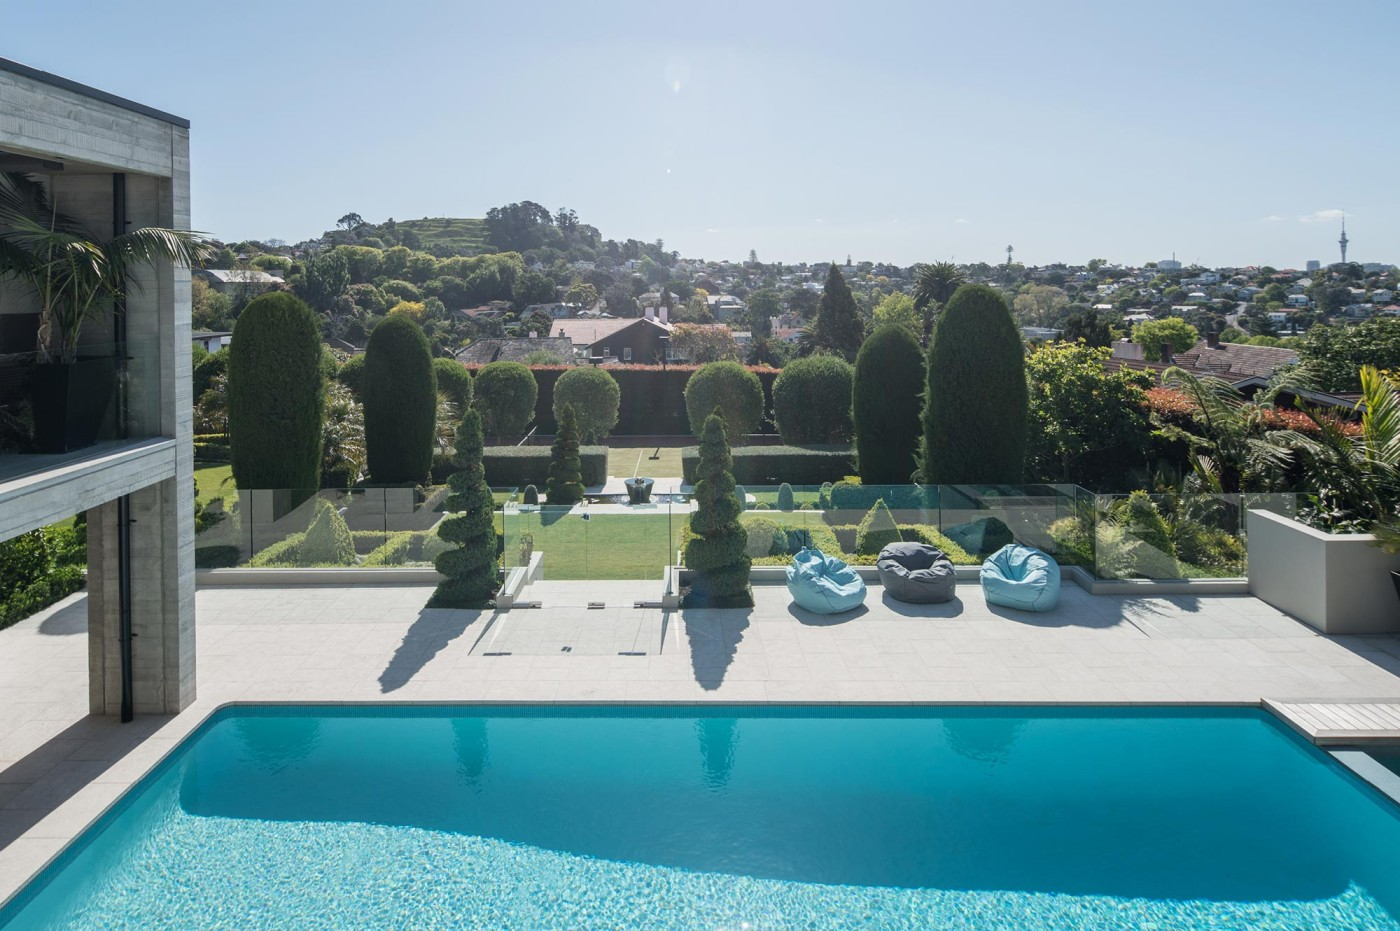 remuera house   sumich chaplin architects